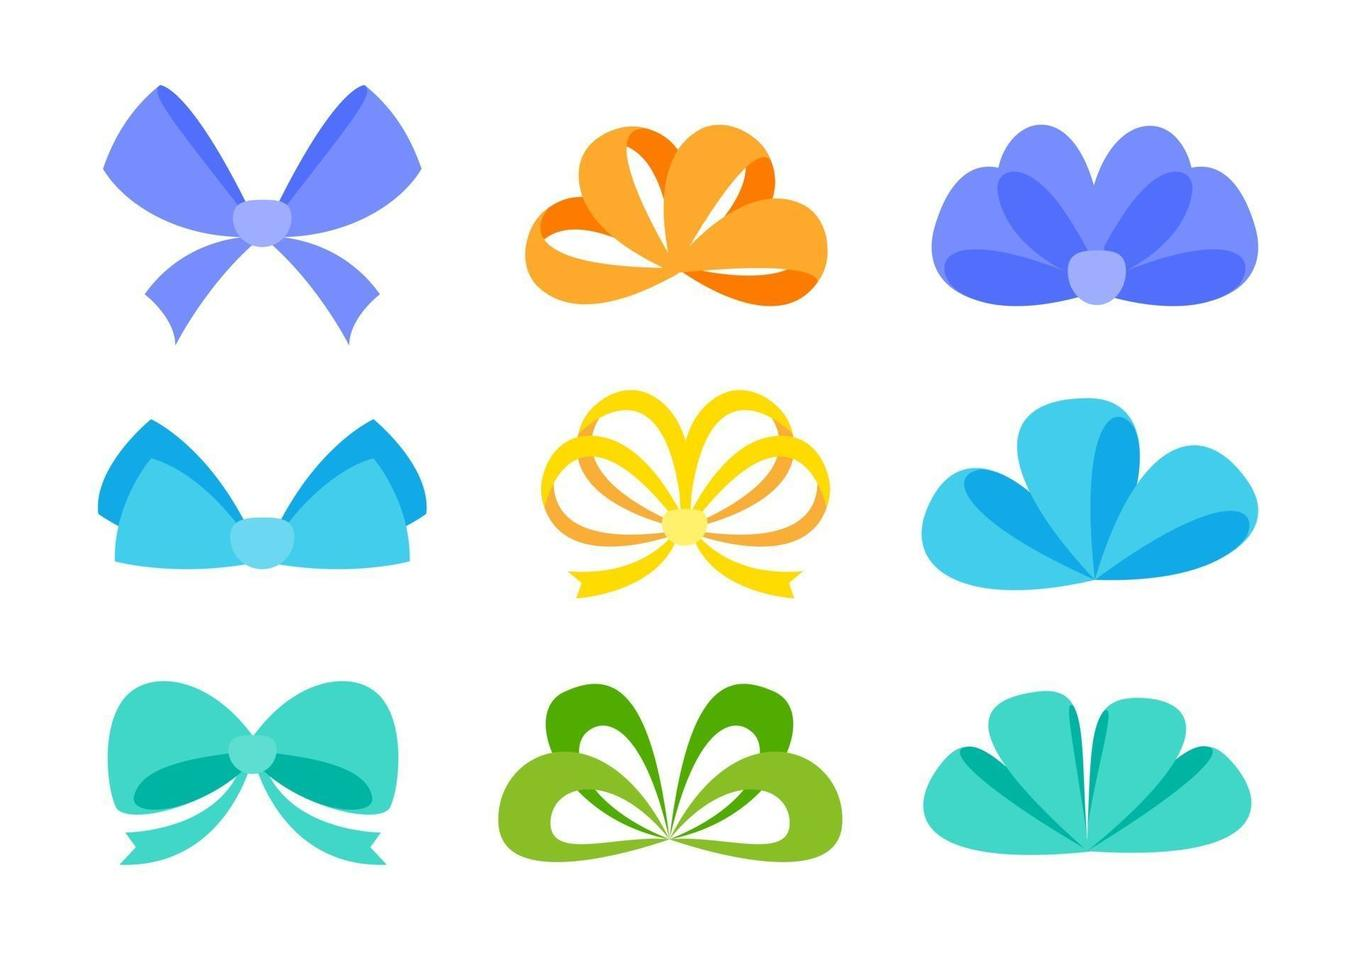 Ribbons tied with bows decorated with gift boxes on New Year's Day vector